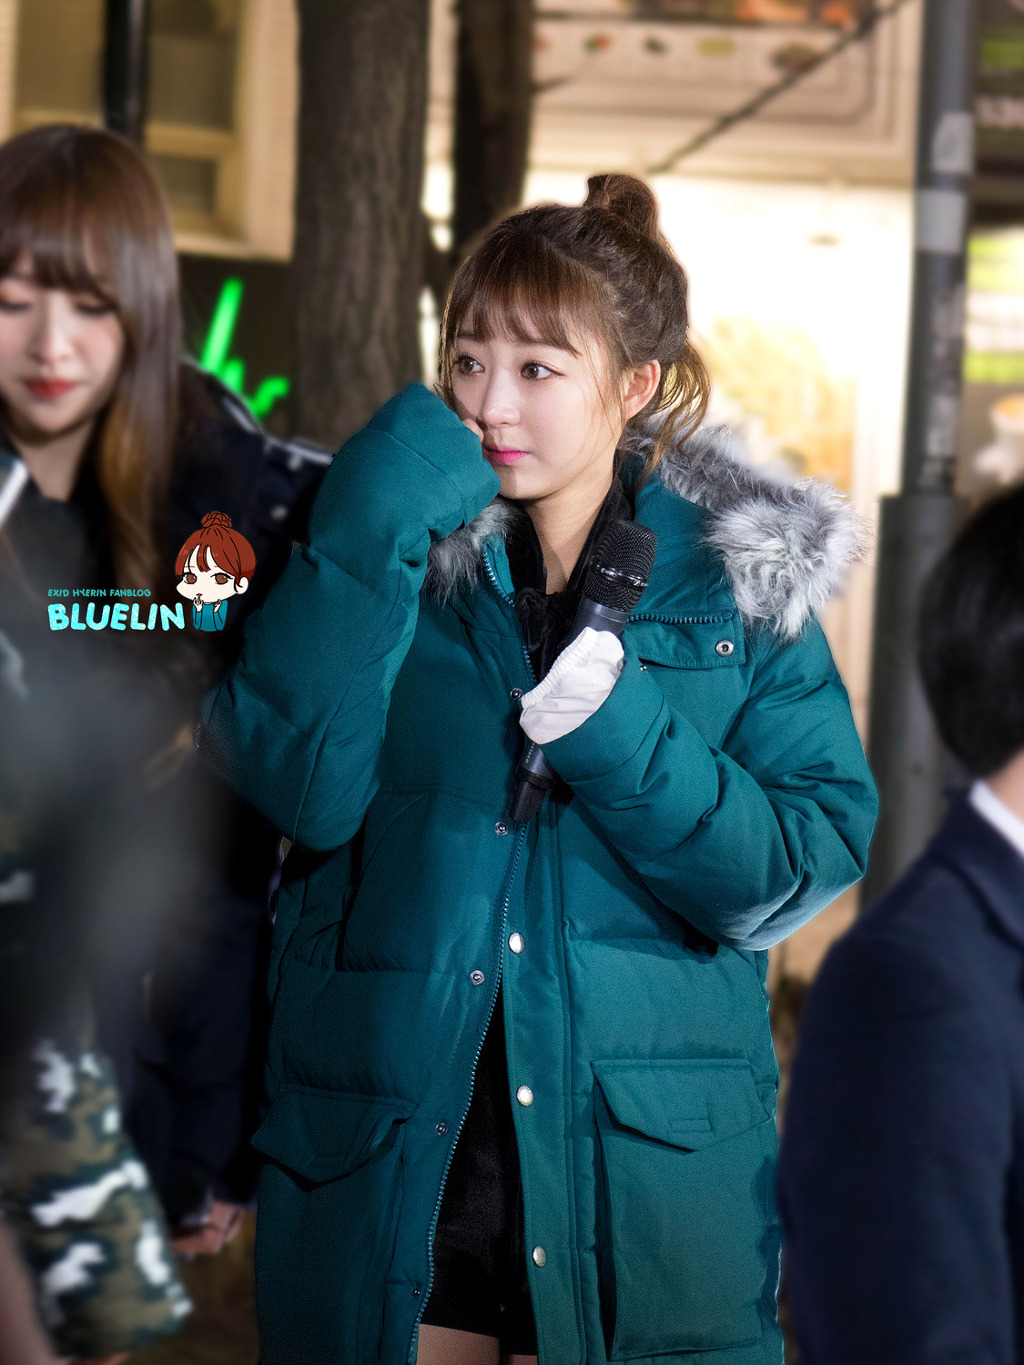 [HQ/FANTAKEN] 150130 Hyelin at One Night of TV Entertainment recording